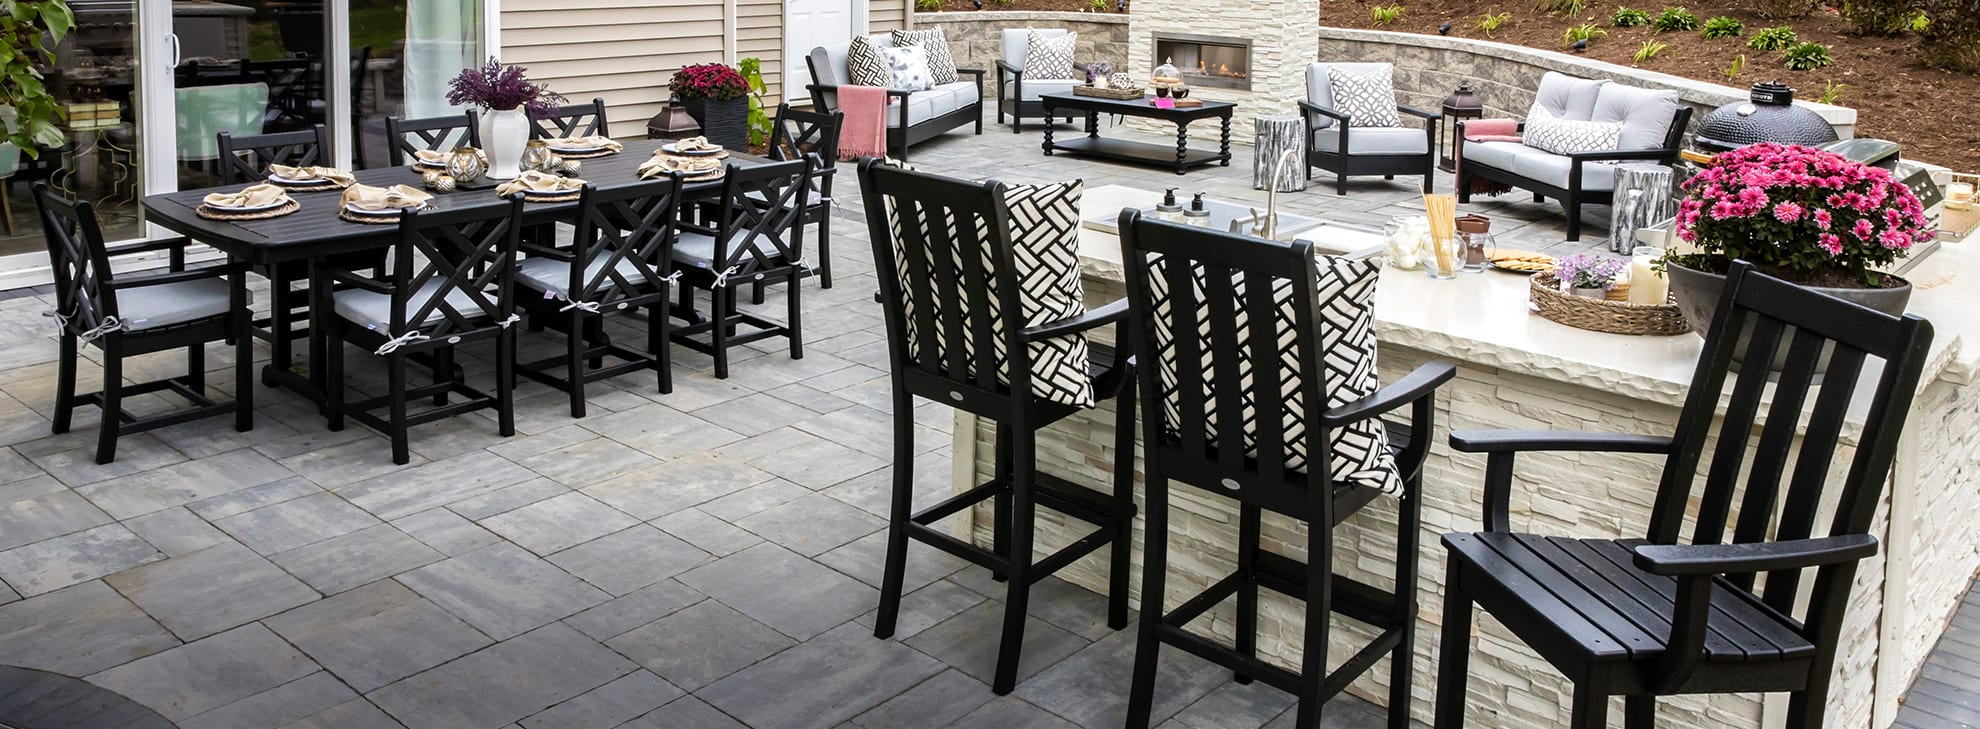 Farah Merhi's outdoor space furnished with POLYWOOD